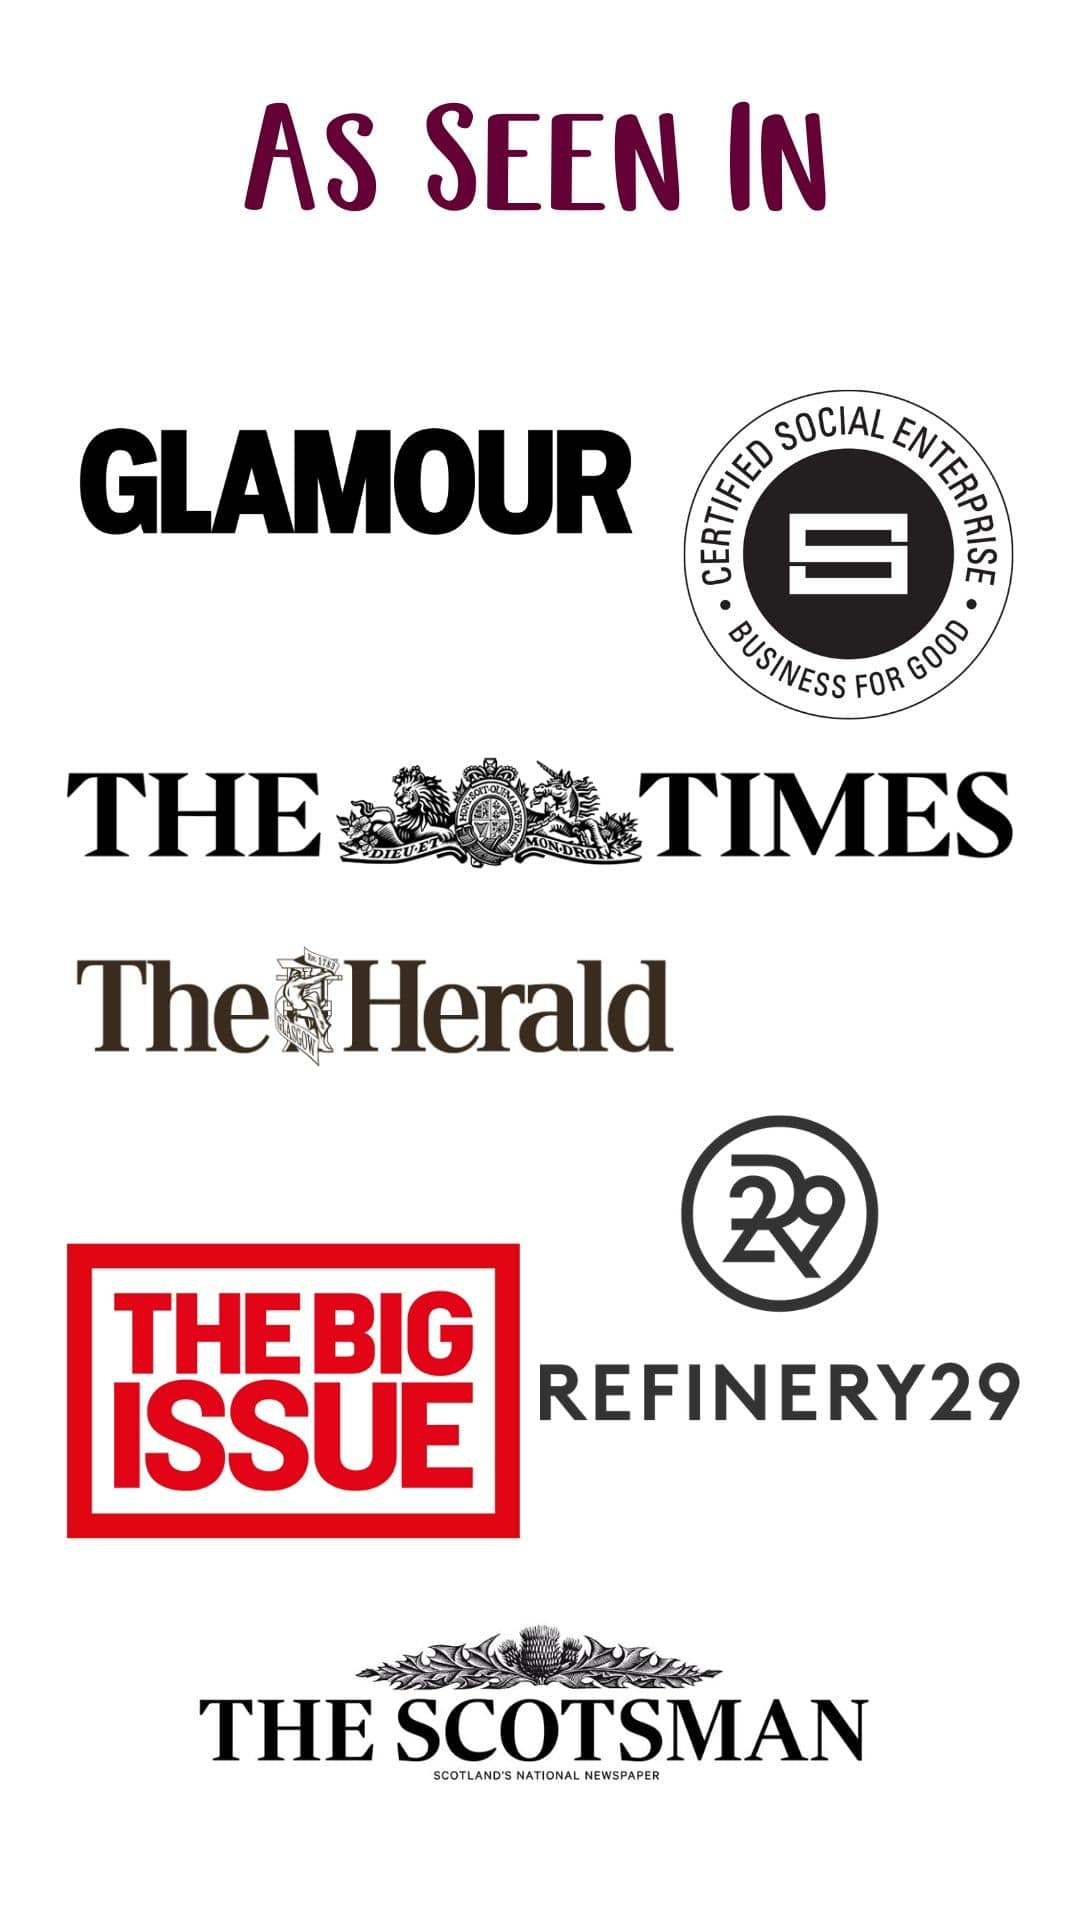 As Seen In - Glamour Magazine, The Sunday Times, The Herald, Refinery 29, The Big Issue, The Scotsman, and Social Enterprise UK